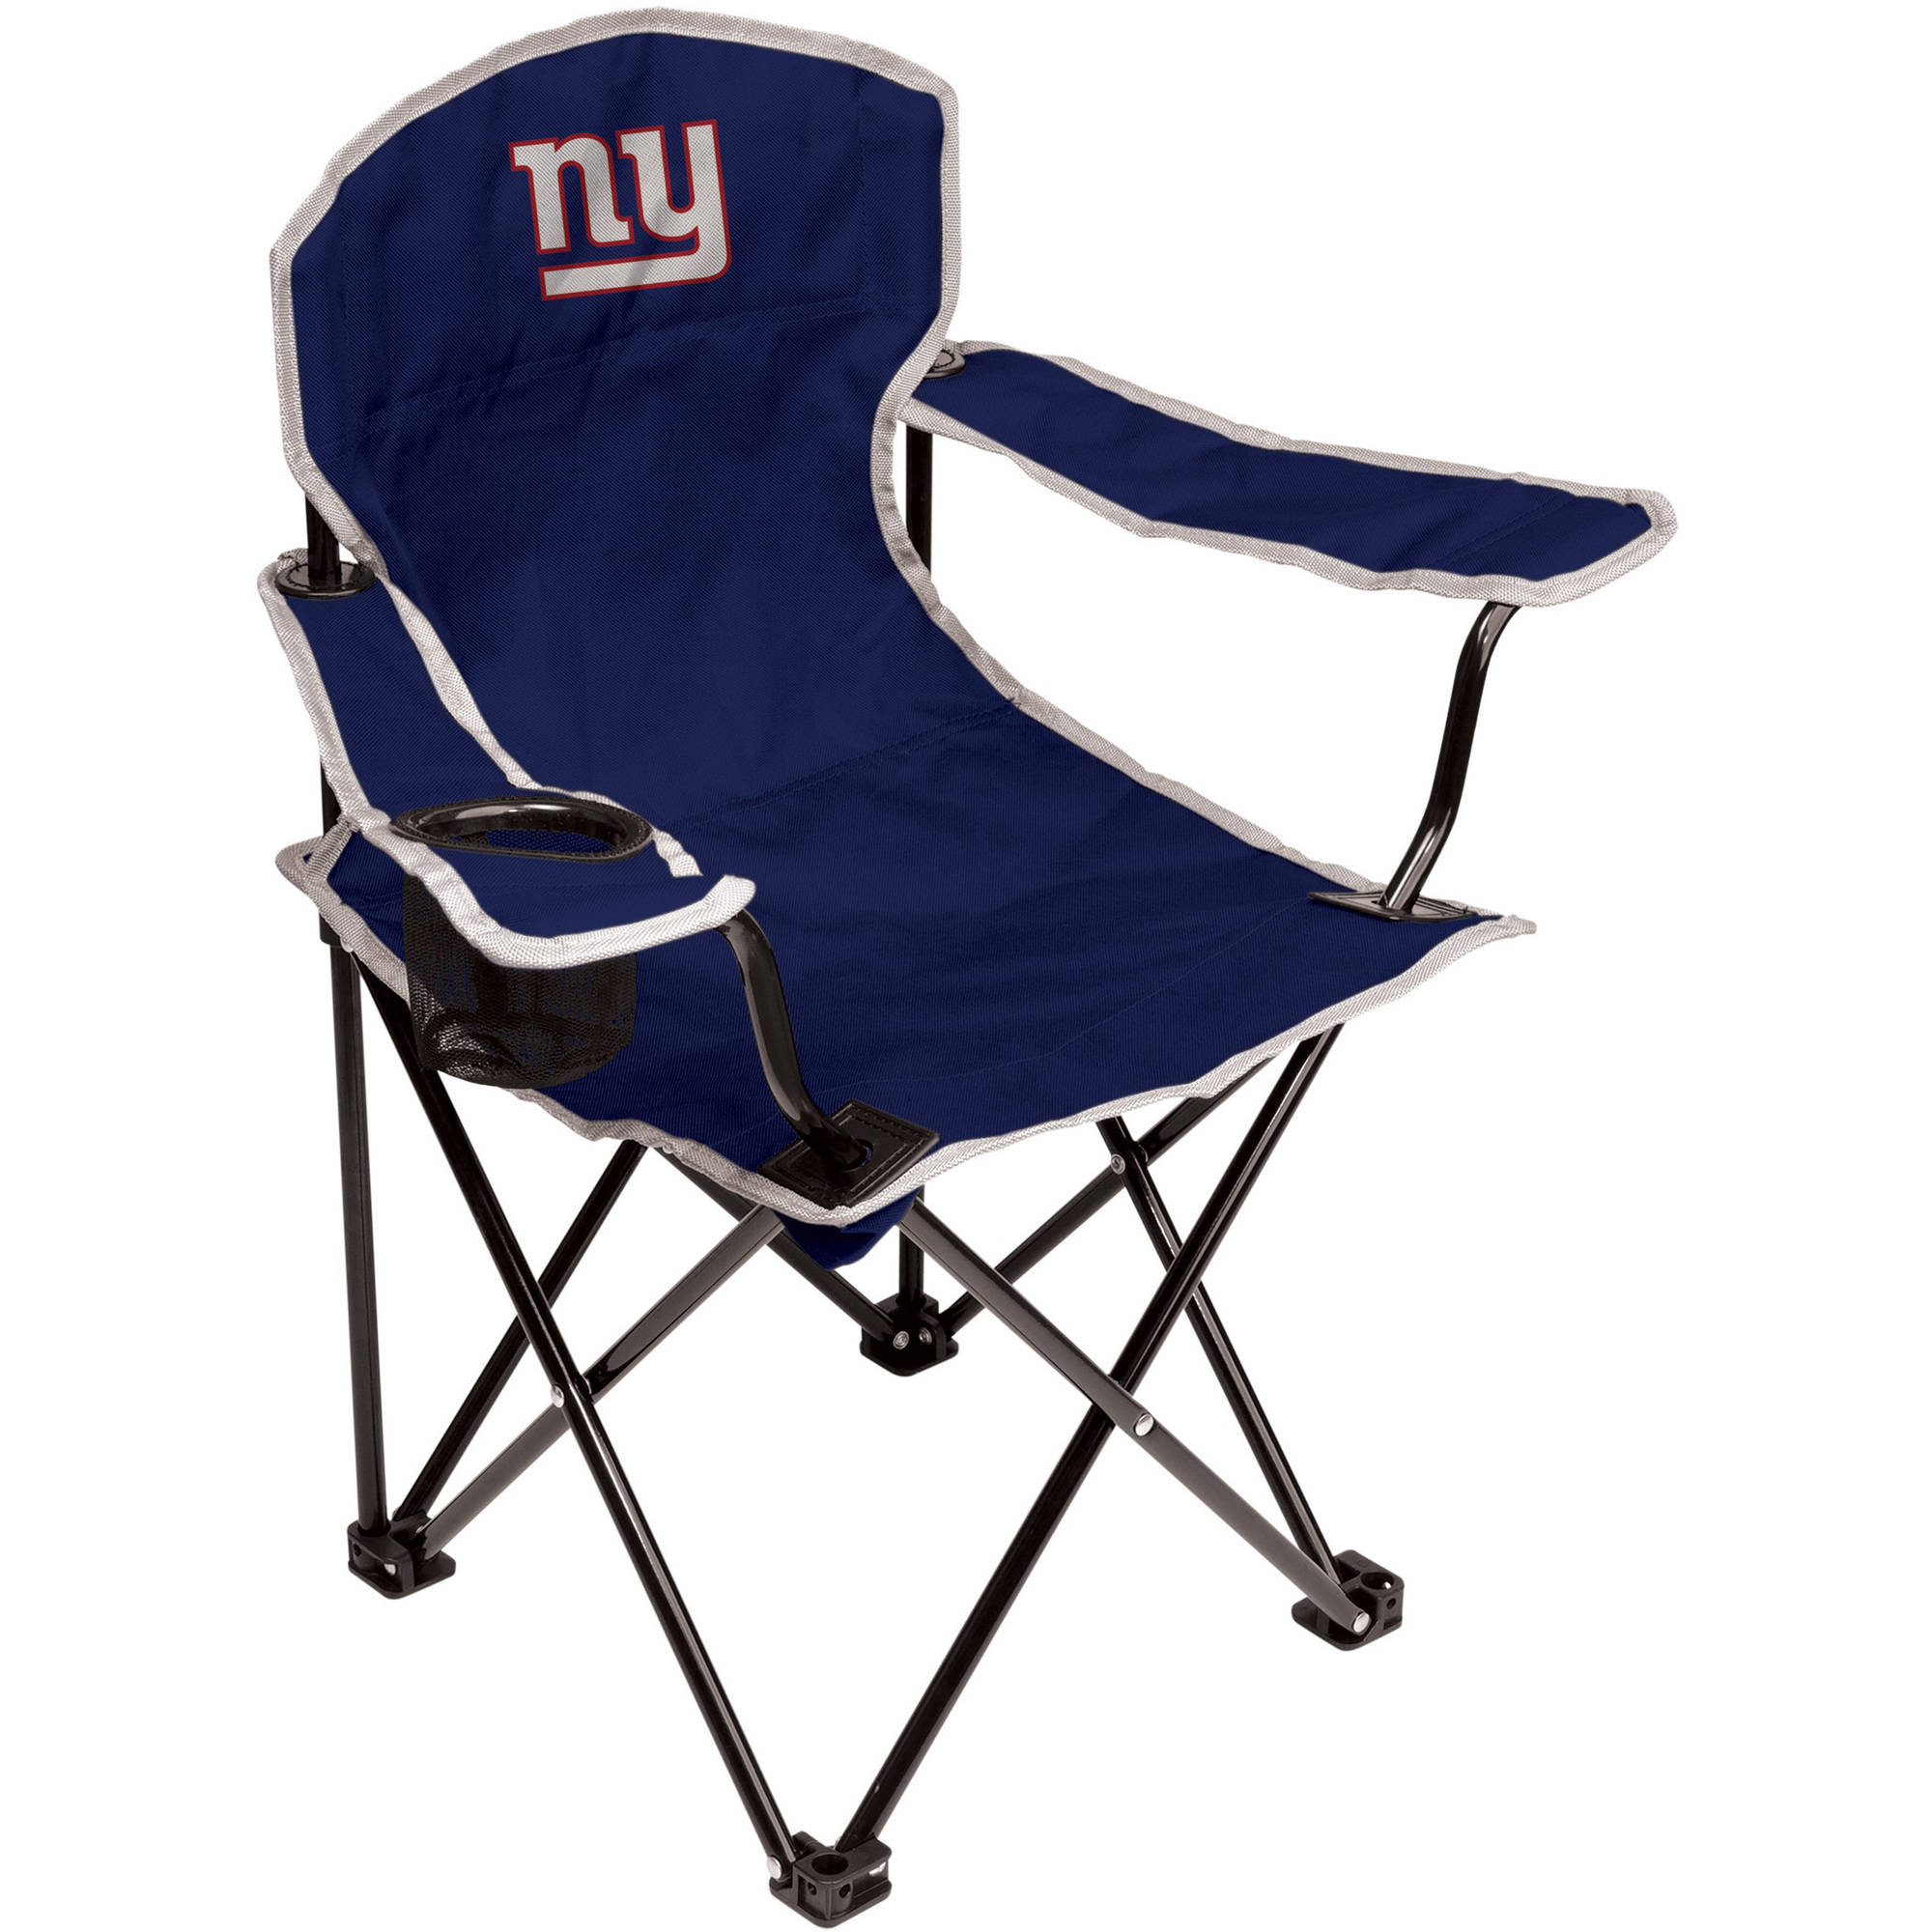 NFL New York Giants Youth Size Tailgate Chair from Coleman by Rawlings